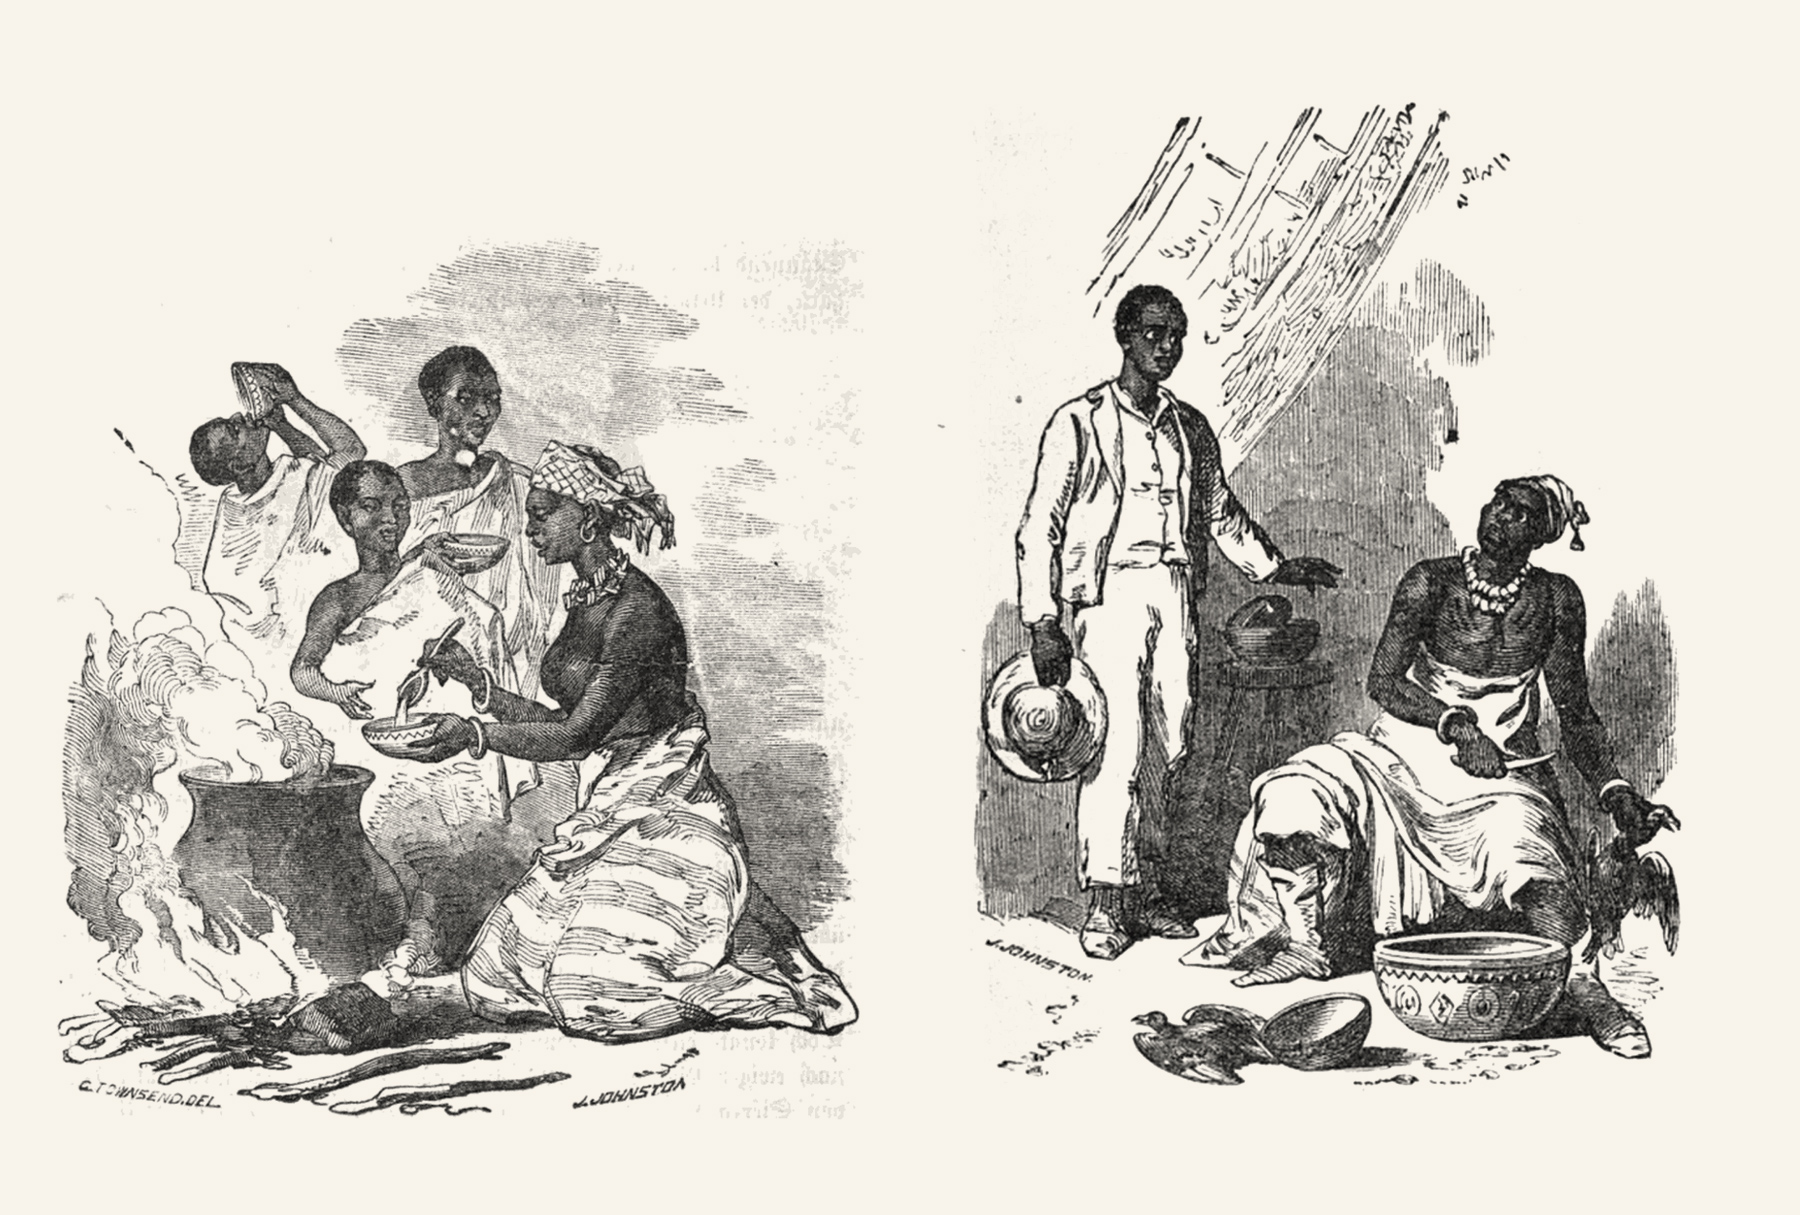 """Left the """"breakfast scenery"""" on Abeokuta's streets. Right King Akitoye, getting disturbed while sacrificing two pigeons to his Orisha, later being very much """"ashamed"""". The simple message in all these images: Western clothes=modern educated African, half-naked=primitive Olorisha. The lady on the left looks bare-breasted."""